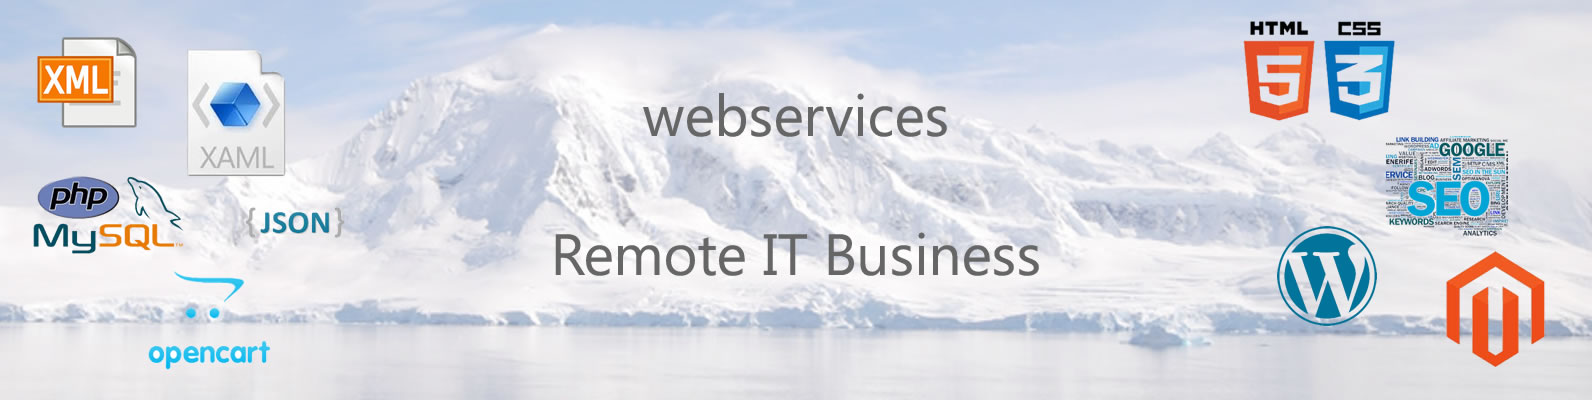 webservices.www.ritb.nl